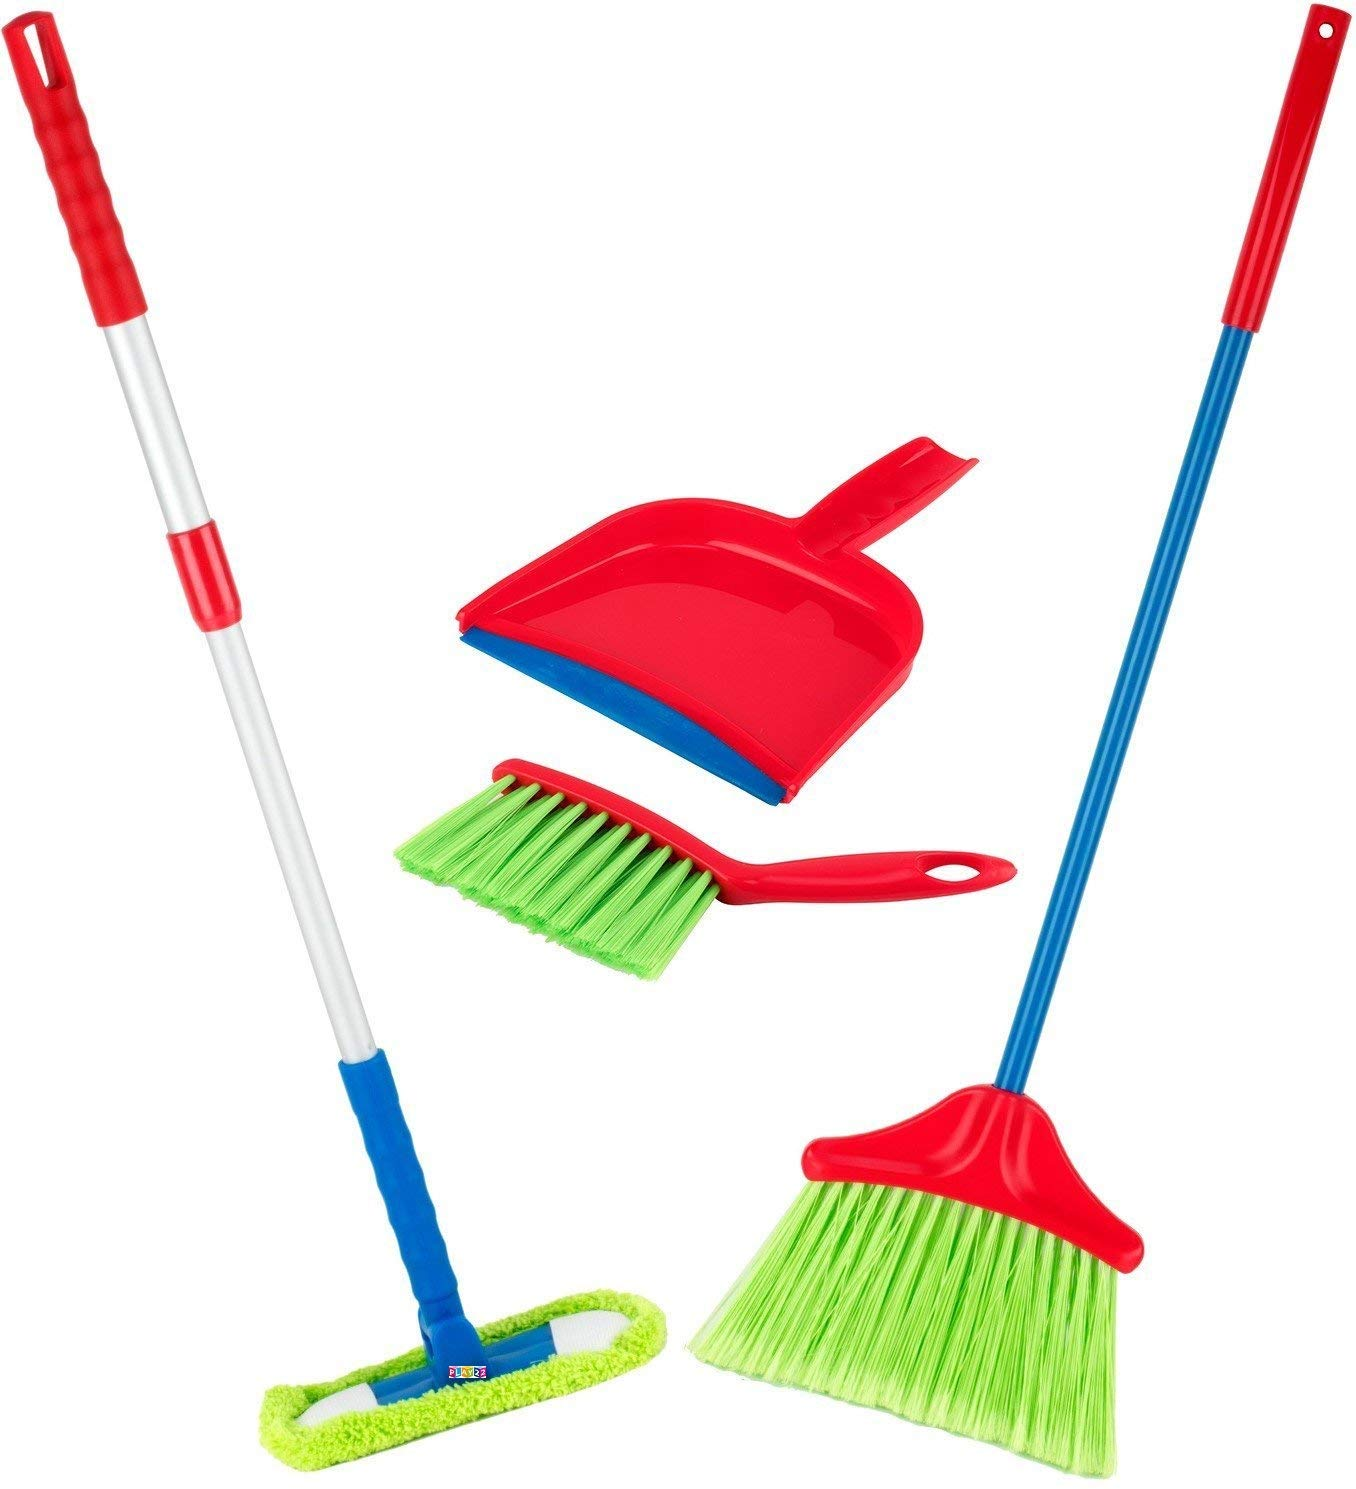 Kids Cleaning Set 4 Piece - Toy Cleaning Set Includes Broom, Mop, Brush, Dust Pan, - Toy Kitchen Toddler Cleaning Set is A Great Toy Gift for Boys & Girls - Original - by Play22 by Play22